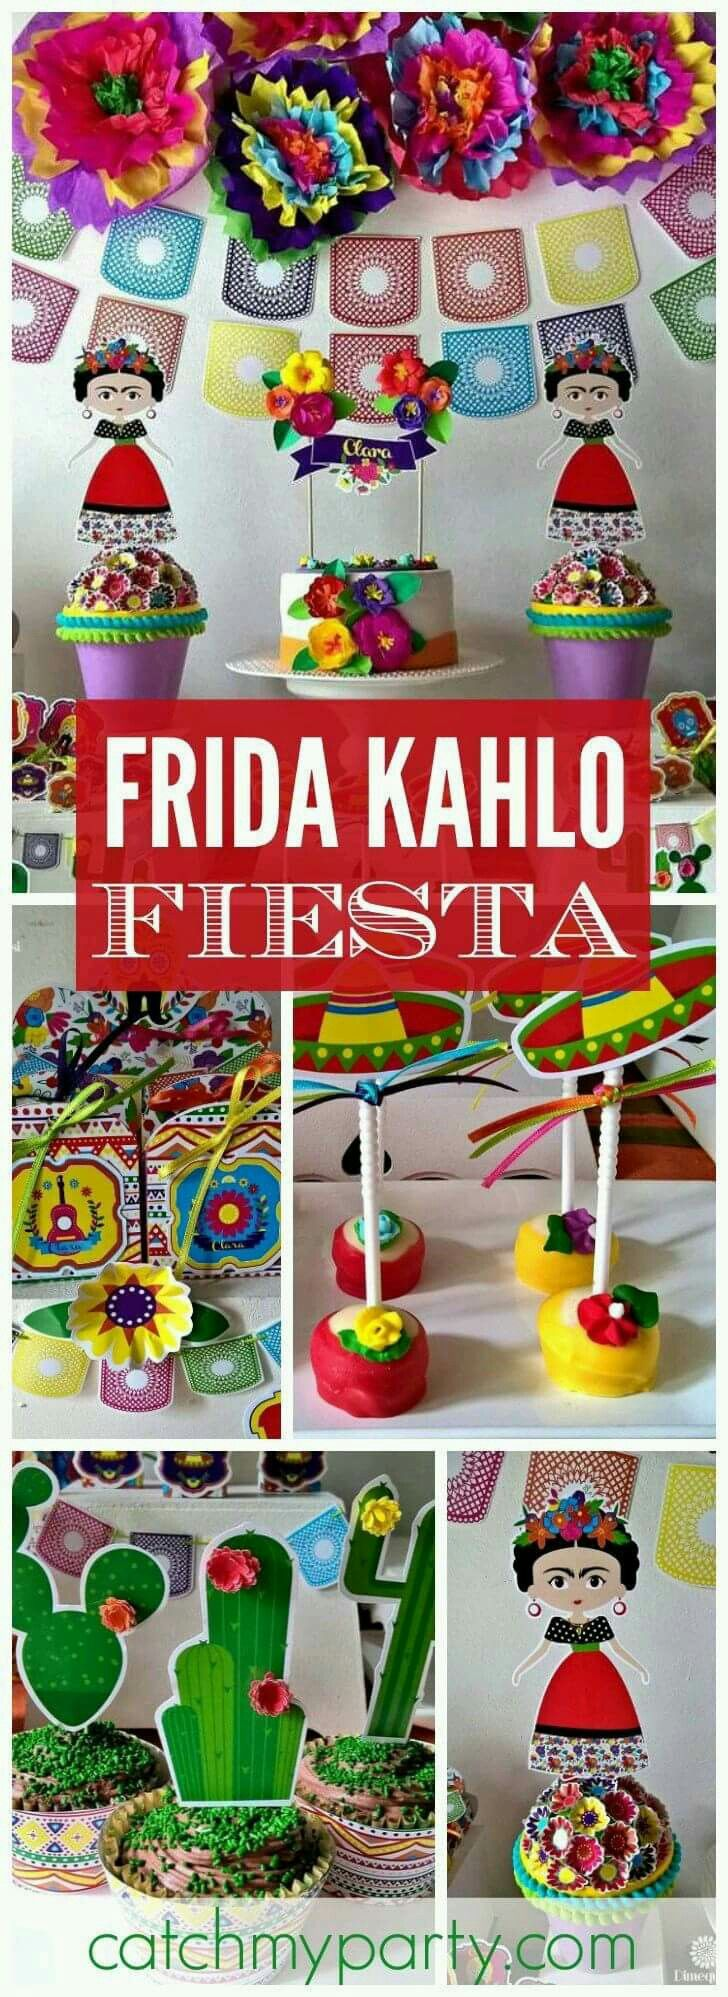 M s de 20 ideas incre bles sobre fiestas tematicas adultos for Decoracion fiesta cumpleanos adultos